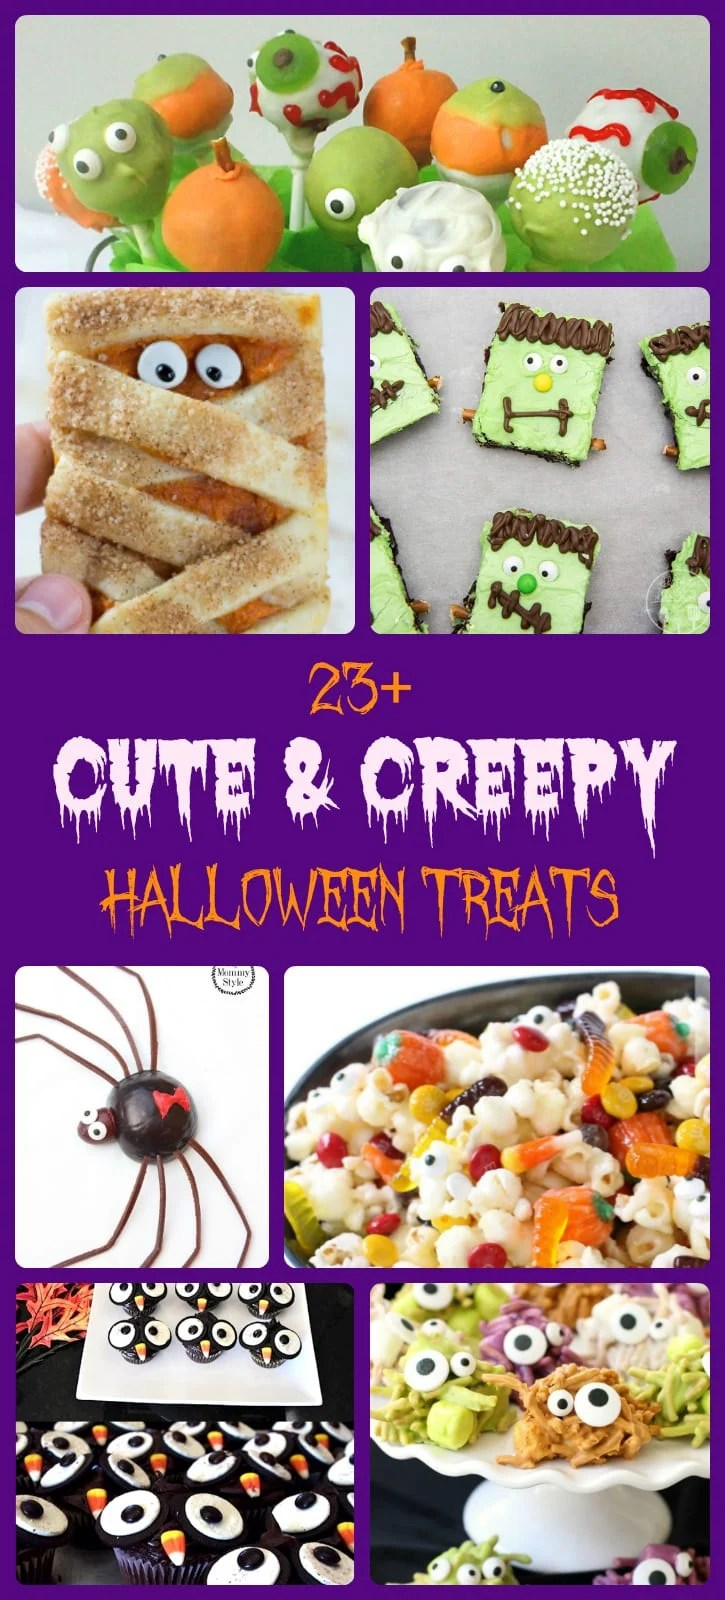 Halloween treats perfect for parties! Cute, creepy, spooky and DELICIOUS! Here are 23+ Halloween Treats you need to make this fall!Fun #Halloween #recipes from Butter With A Side of Bread